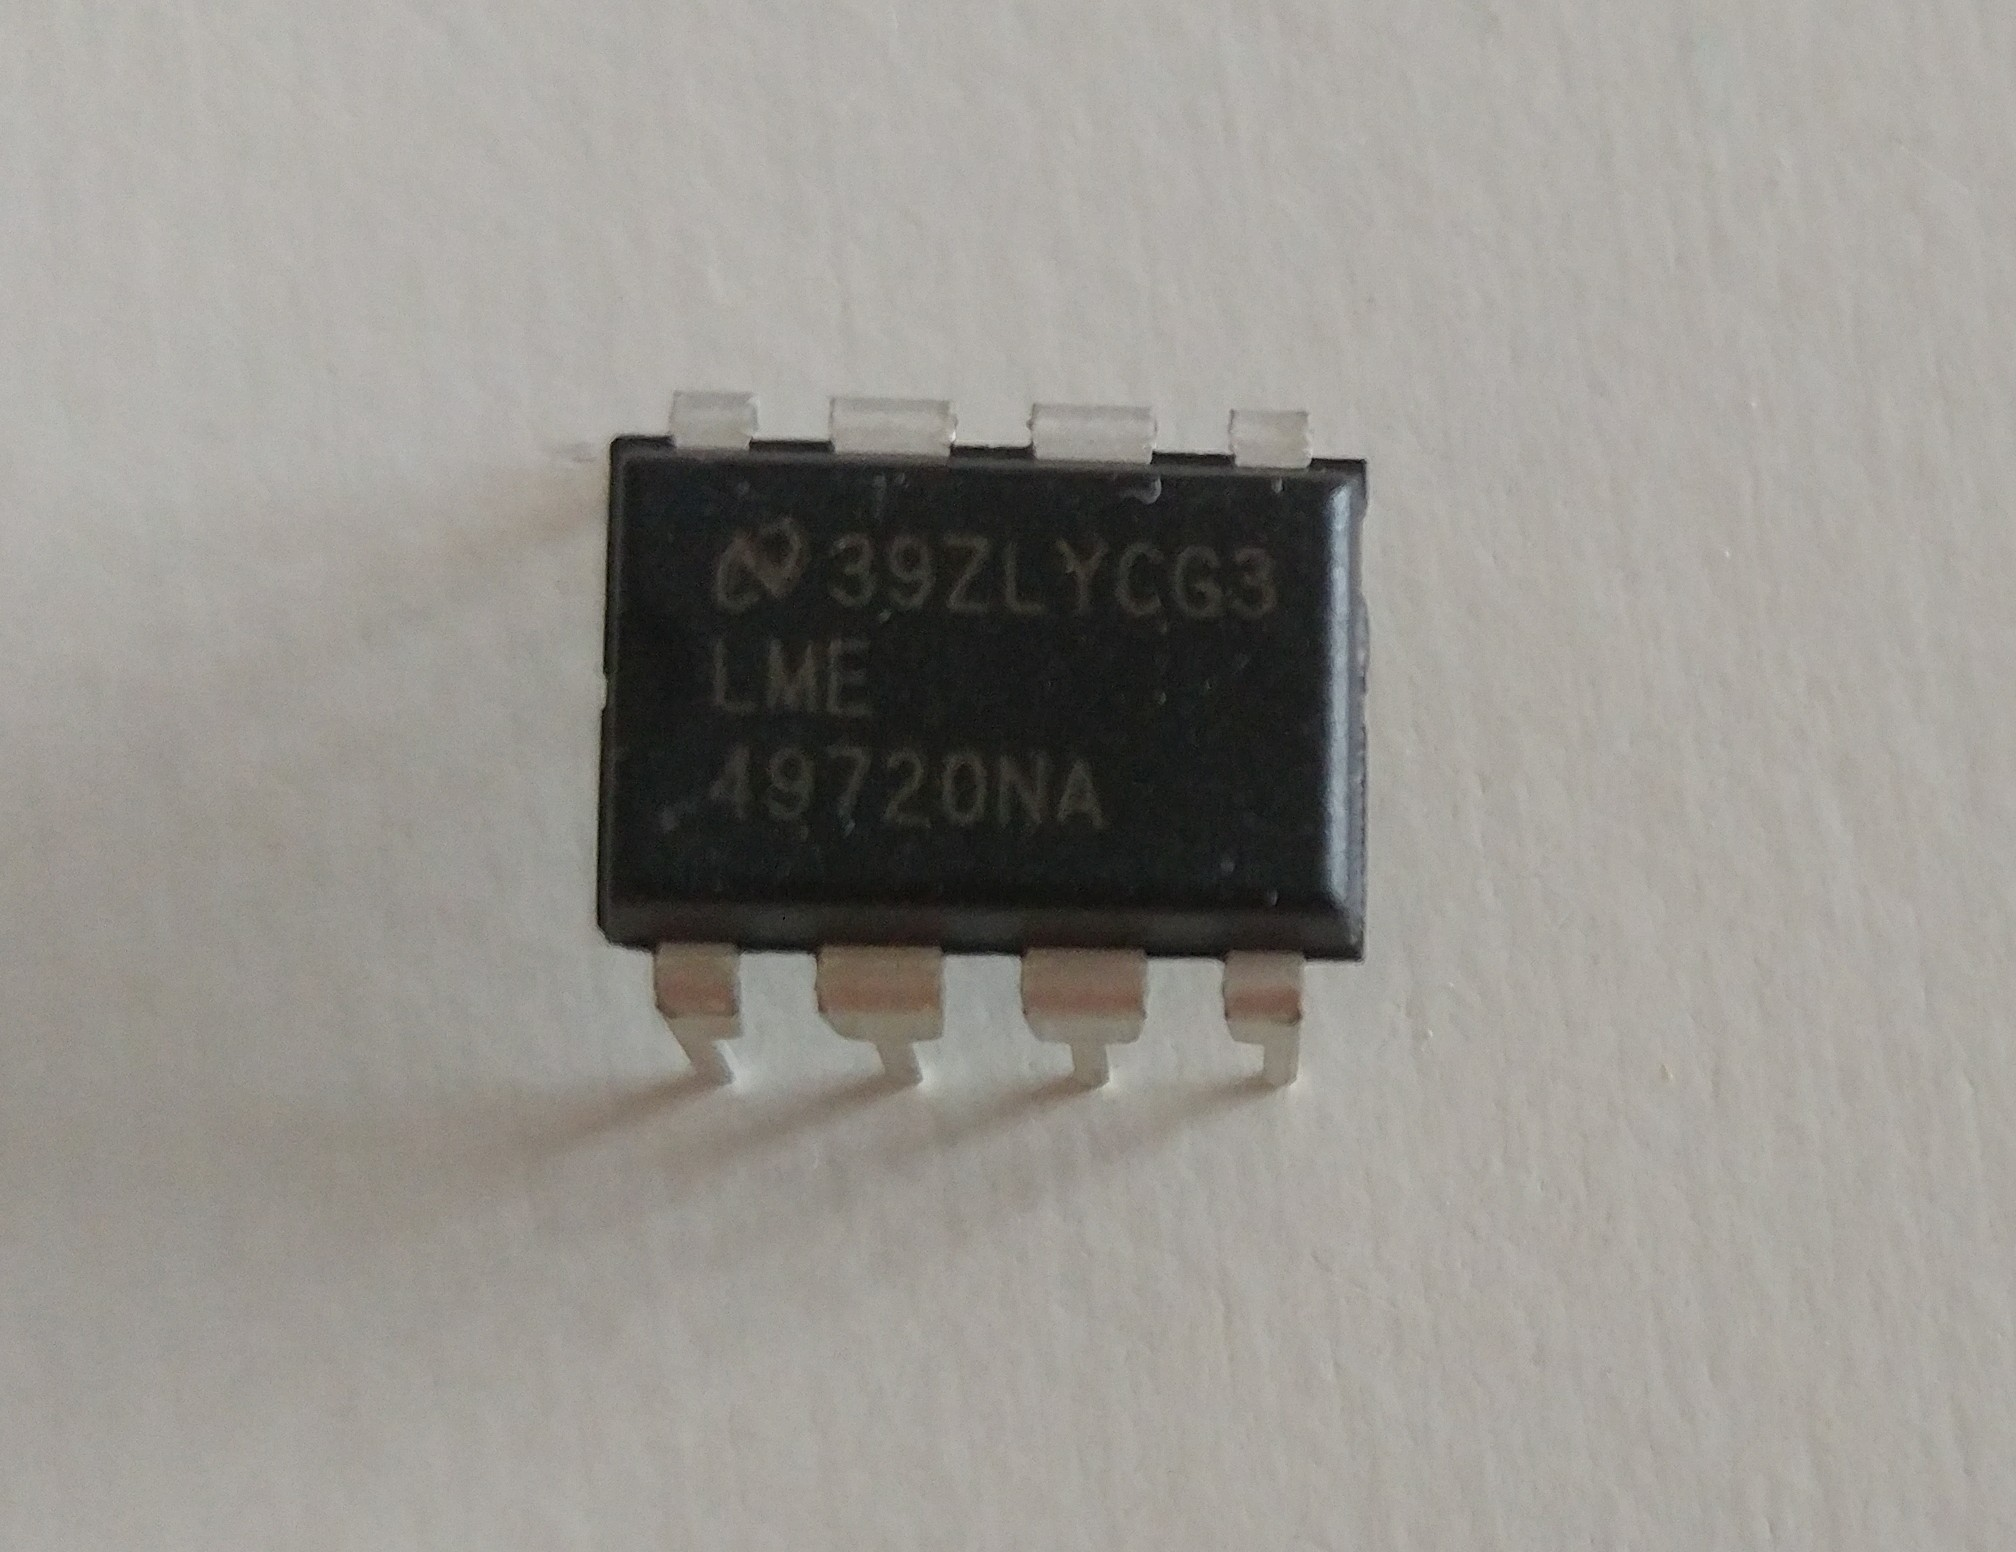 Lme49720 Lme49720na Fake Or Authentic Audio Forum Ti Highspeed Amplifier Circuits Analog Wire Blogs E2e Community Not Sure If They Are Indeed Genuine Any Product Manager Can Help Advice About Their Authenticity